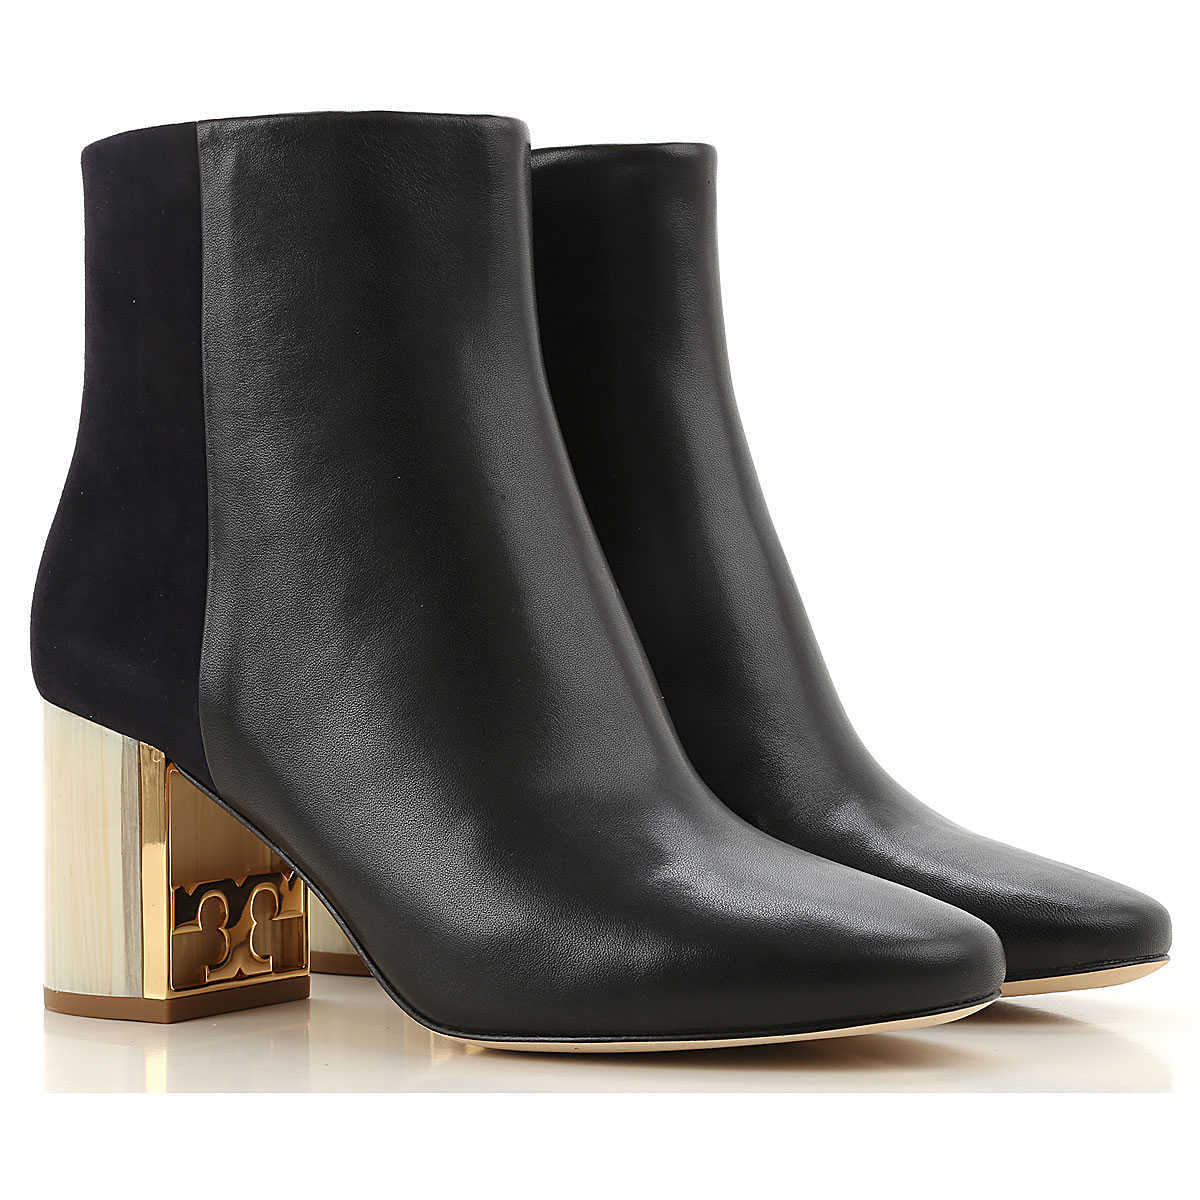 Tory Burch Boots for Women Booties Canada - GOOFASH - Womens BOOTS